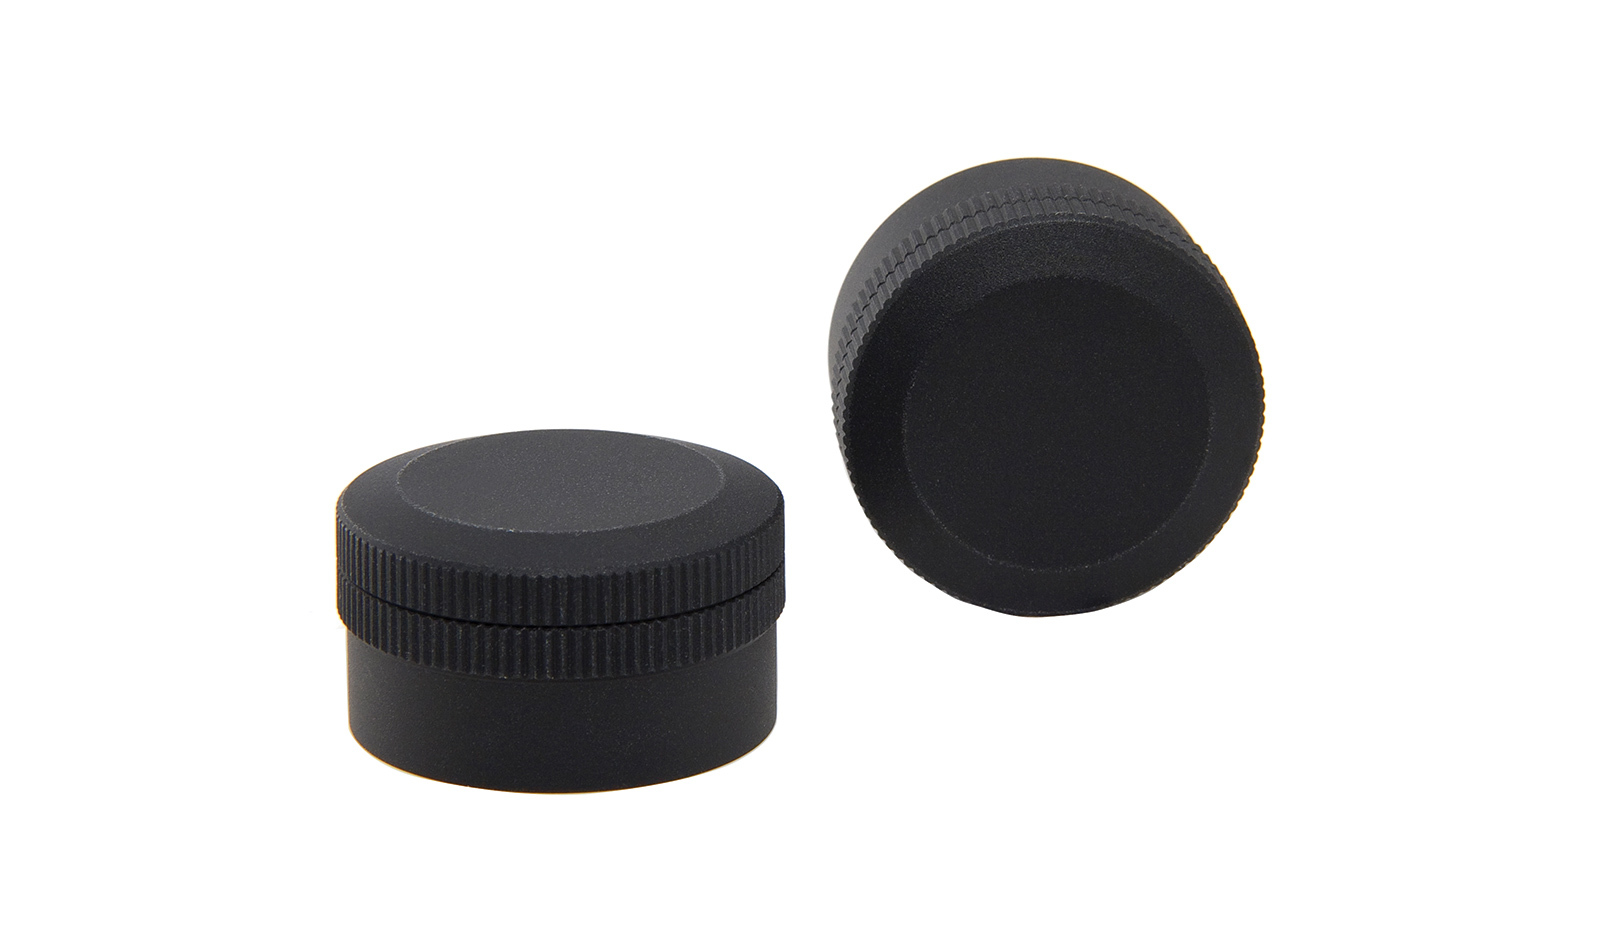 Adjuster Cap Covers for 1-4x24 AccuPoint®